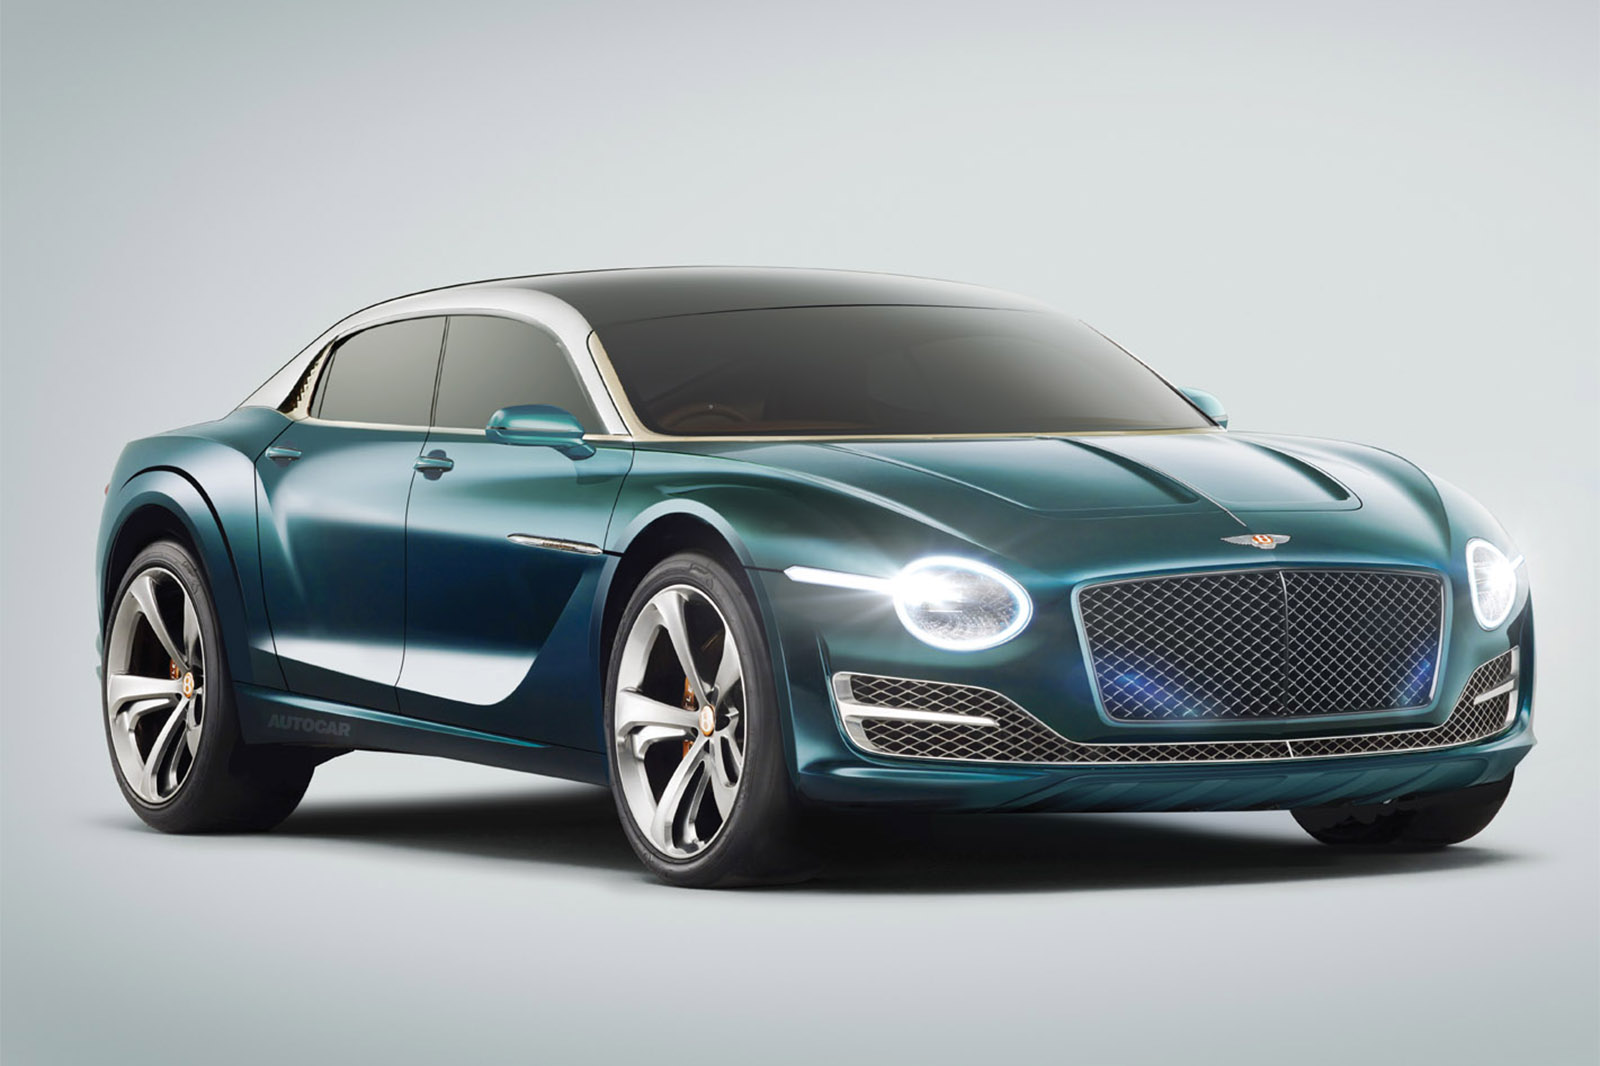 Bentley S First Ev To Be High Riding Saloon In 2025 Autocar